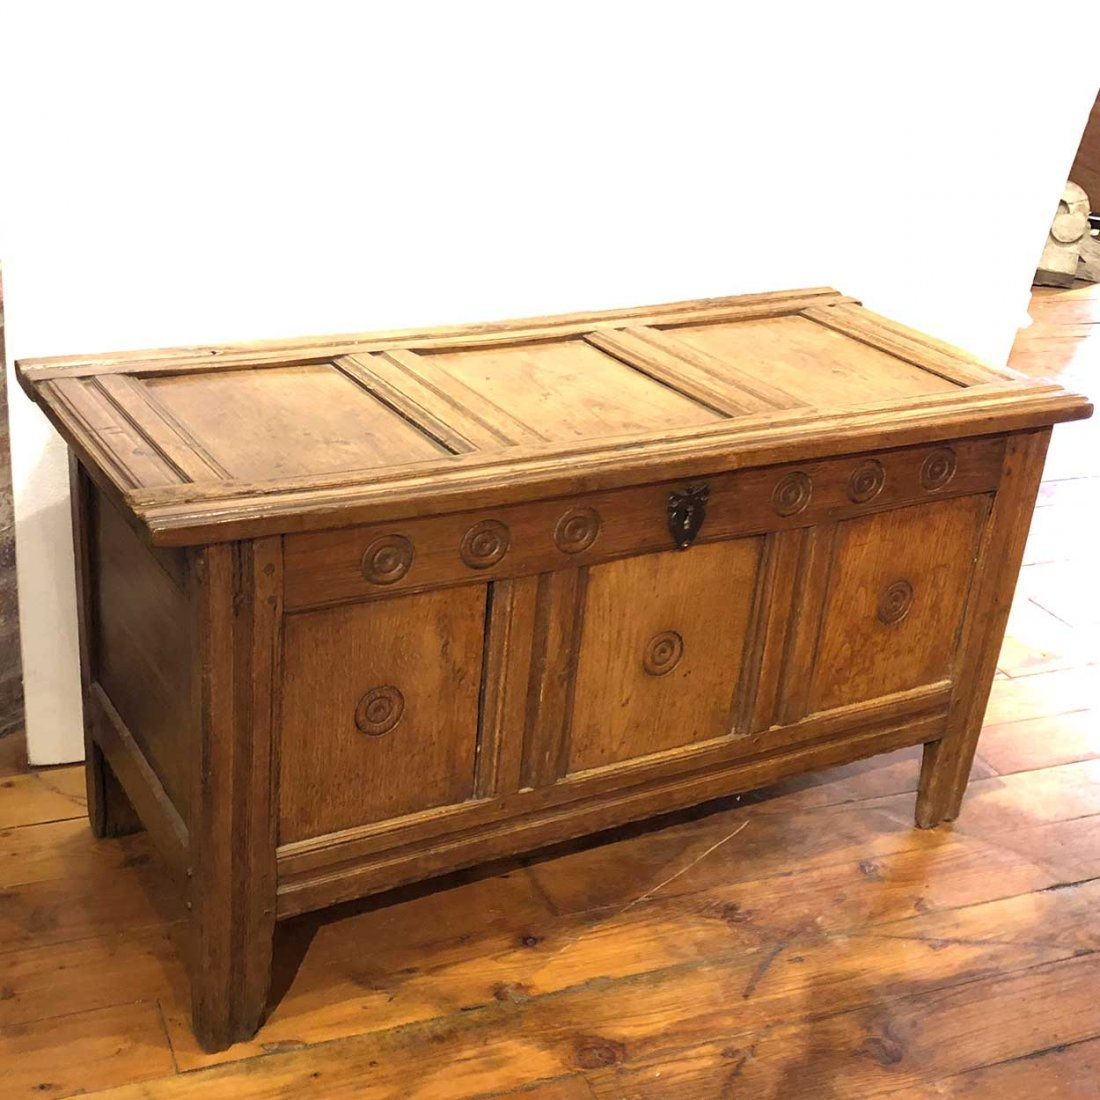 Early English 17th century Oak Coffer Chest